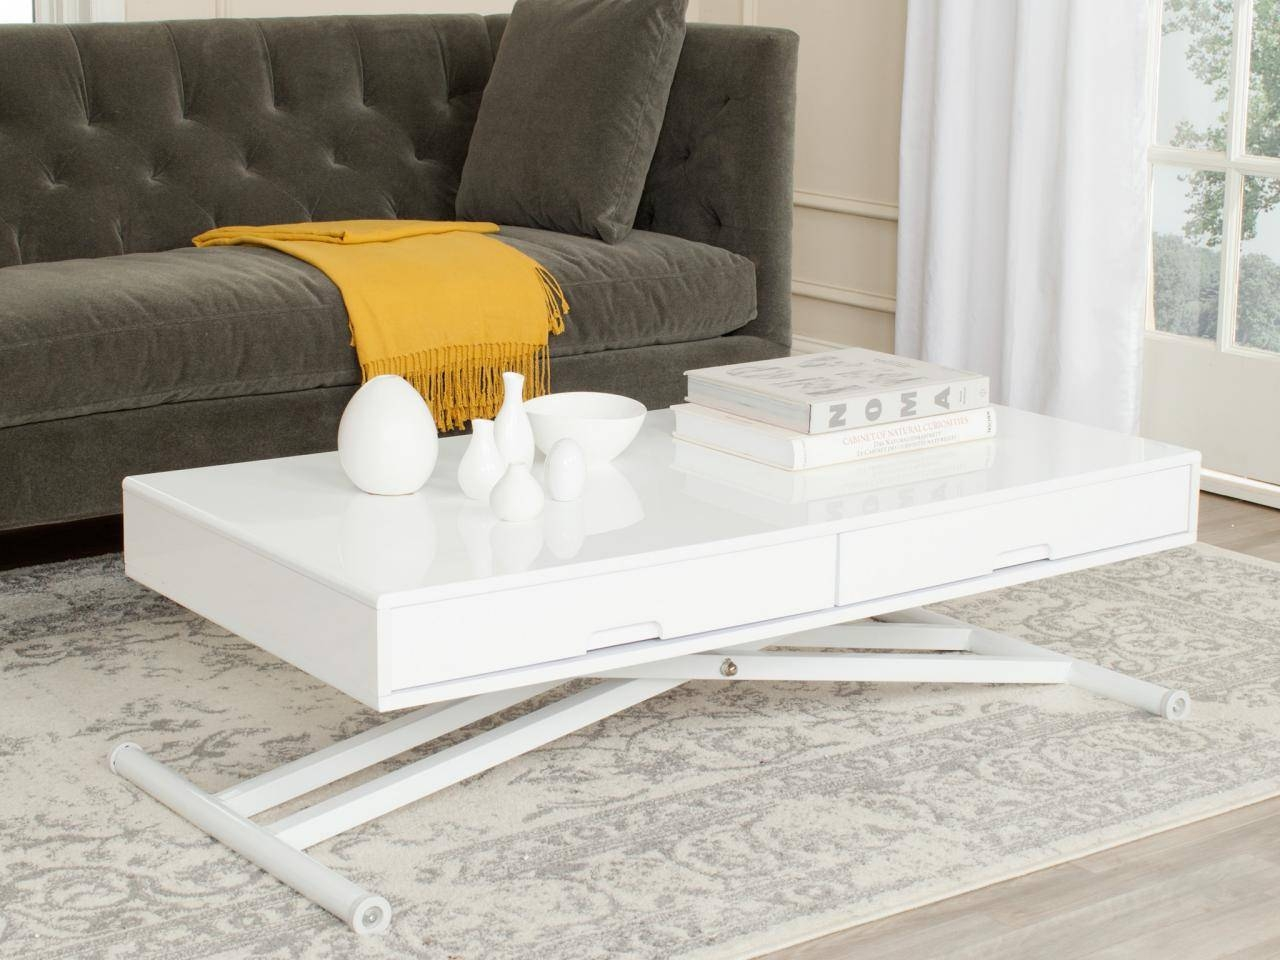 Coffee Table Styling Ideas | Hgtv's Decorating & Design Blog | Hgtv regarding Lacquer Coffee Tables (Image 9 of 30)